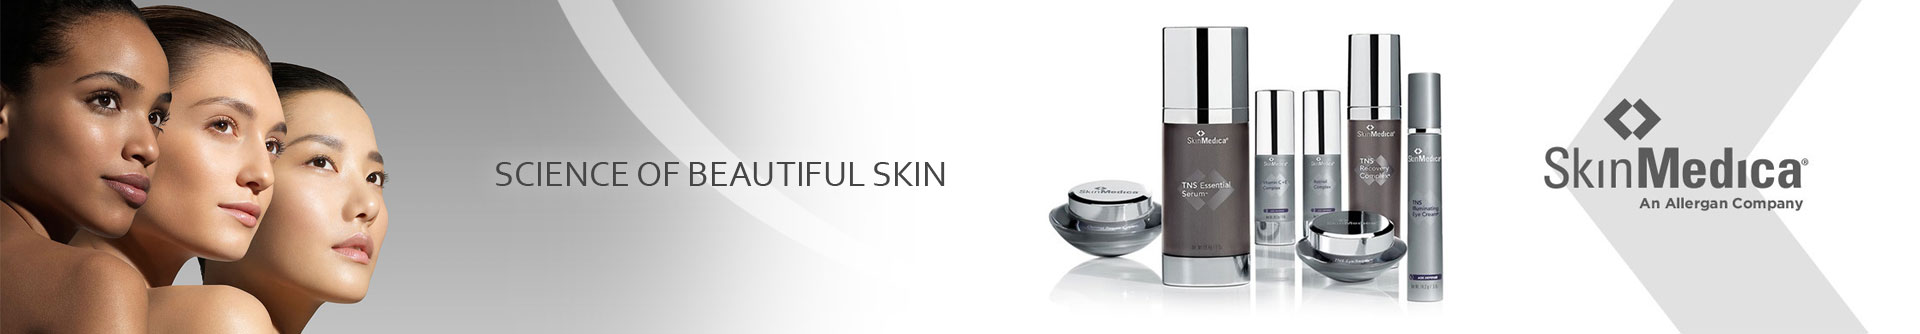 SkinMedica Cosmetic Products